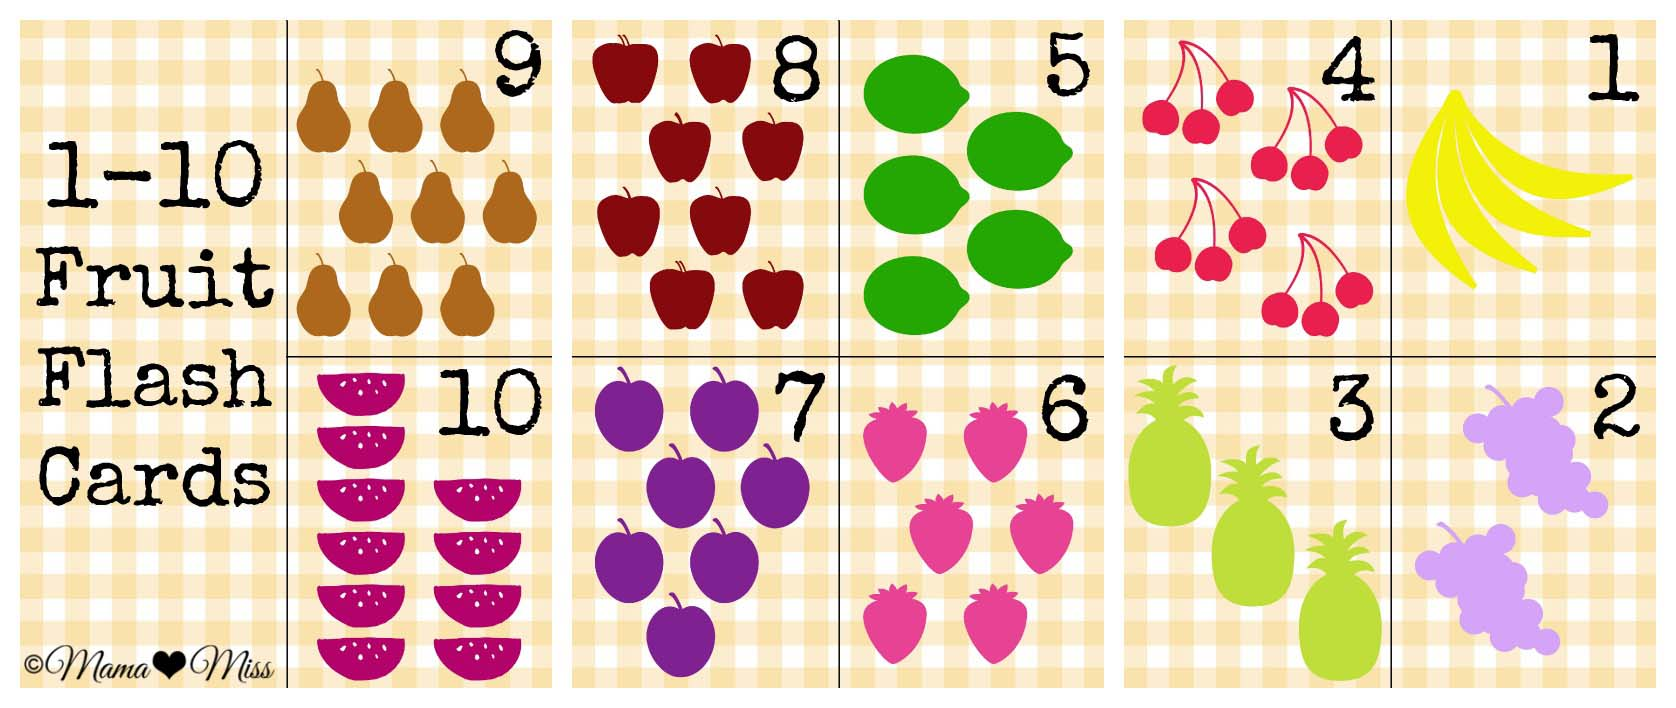 image relating to Printable Numbers 1 10 Flashcards named Visitor Mama: Fruit Flashcards towards mama♥miss out on - Boy Mama